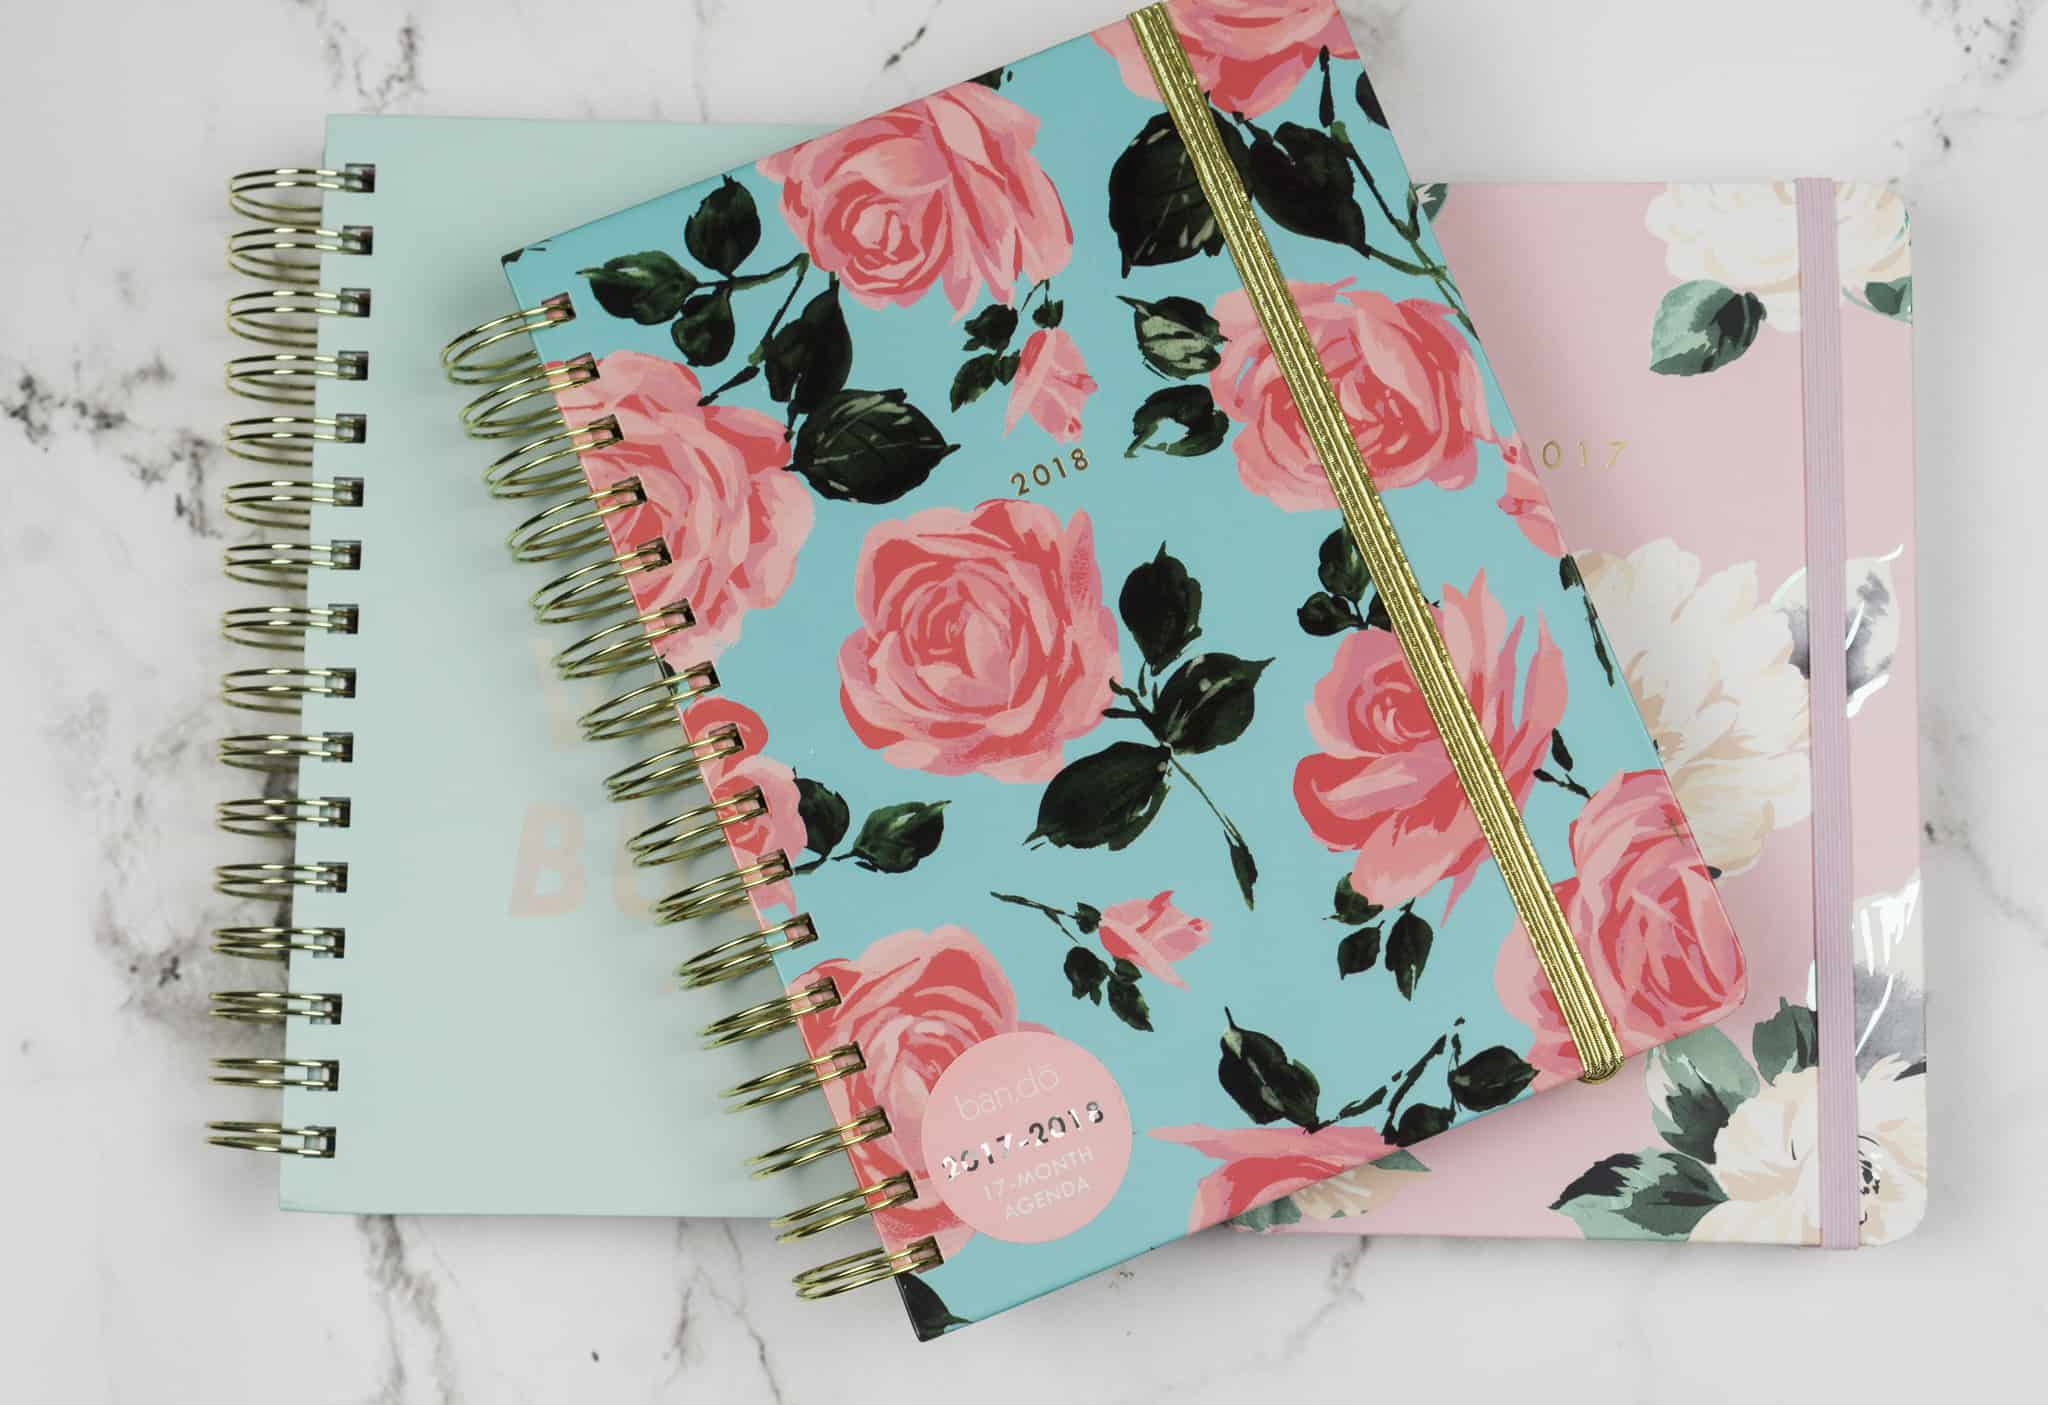 Best 2018 Planners - Lace and Sparkles